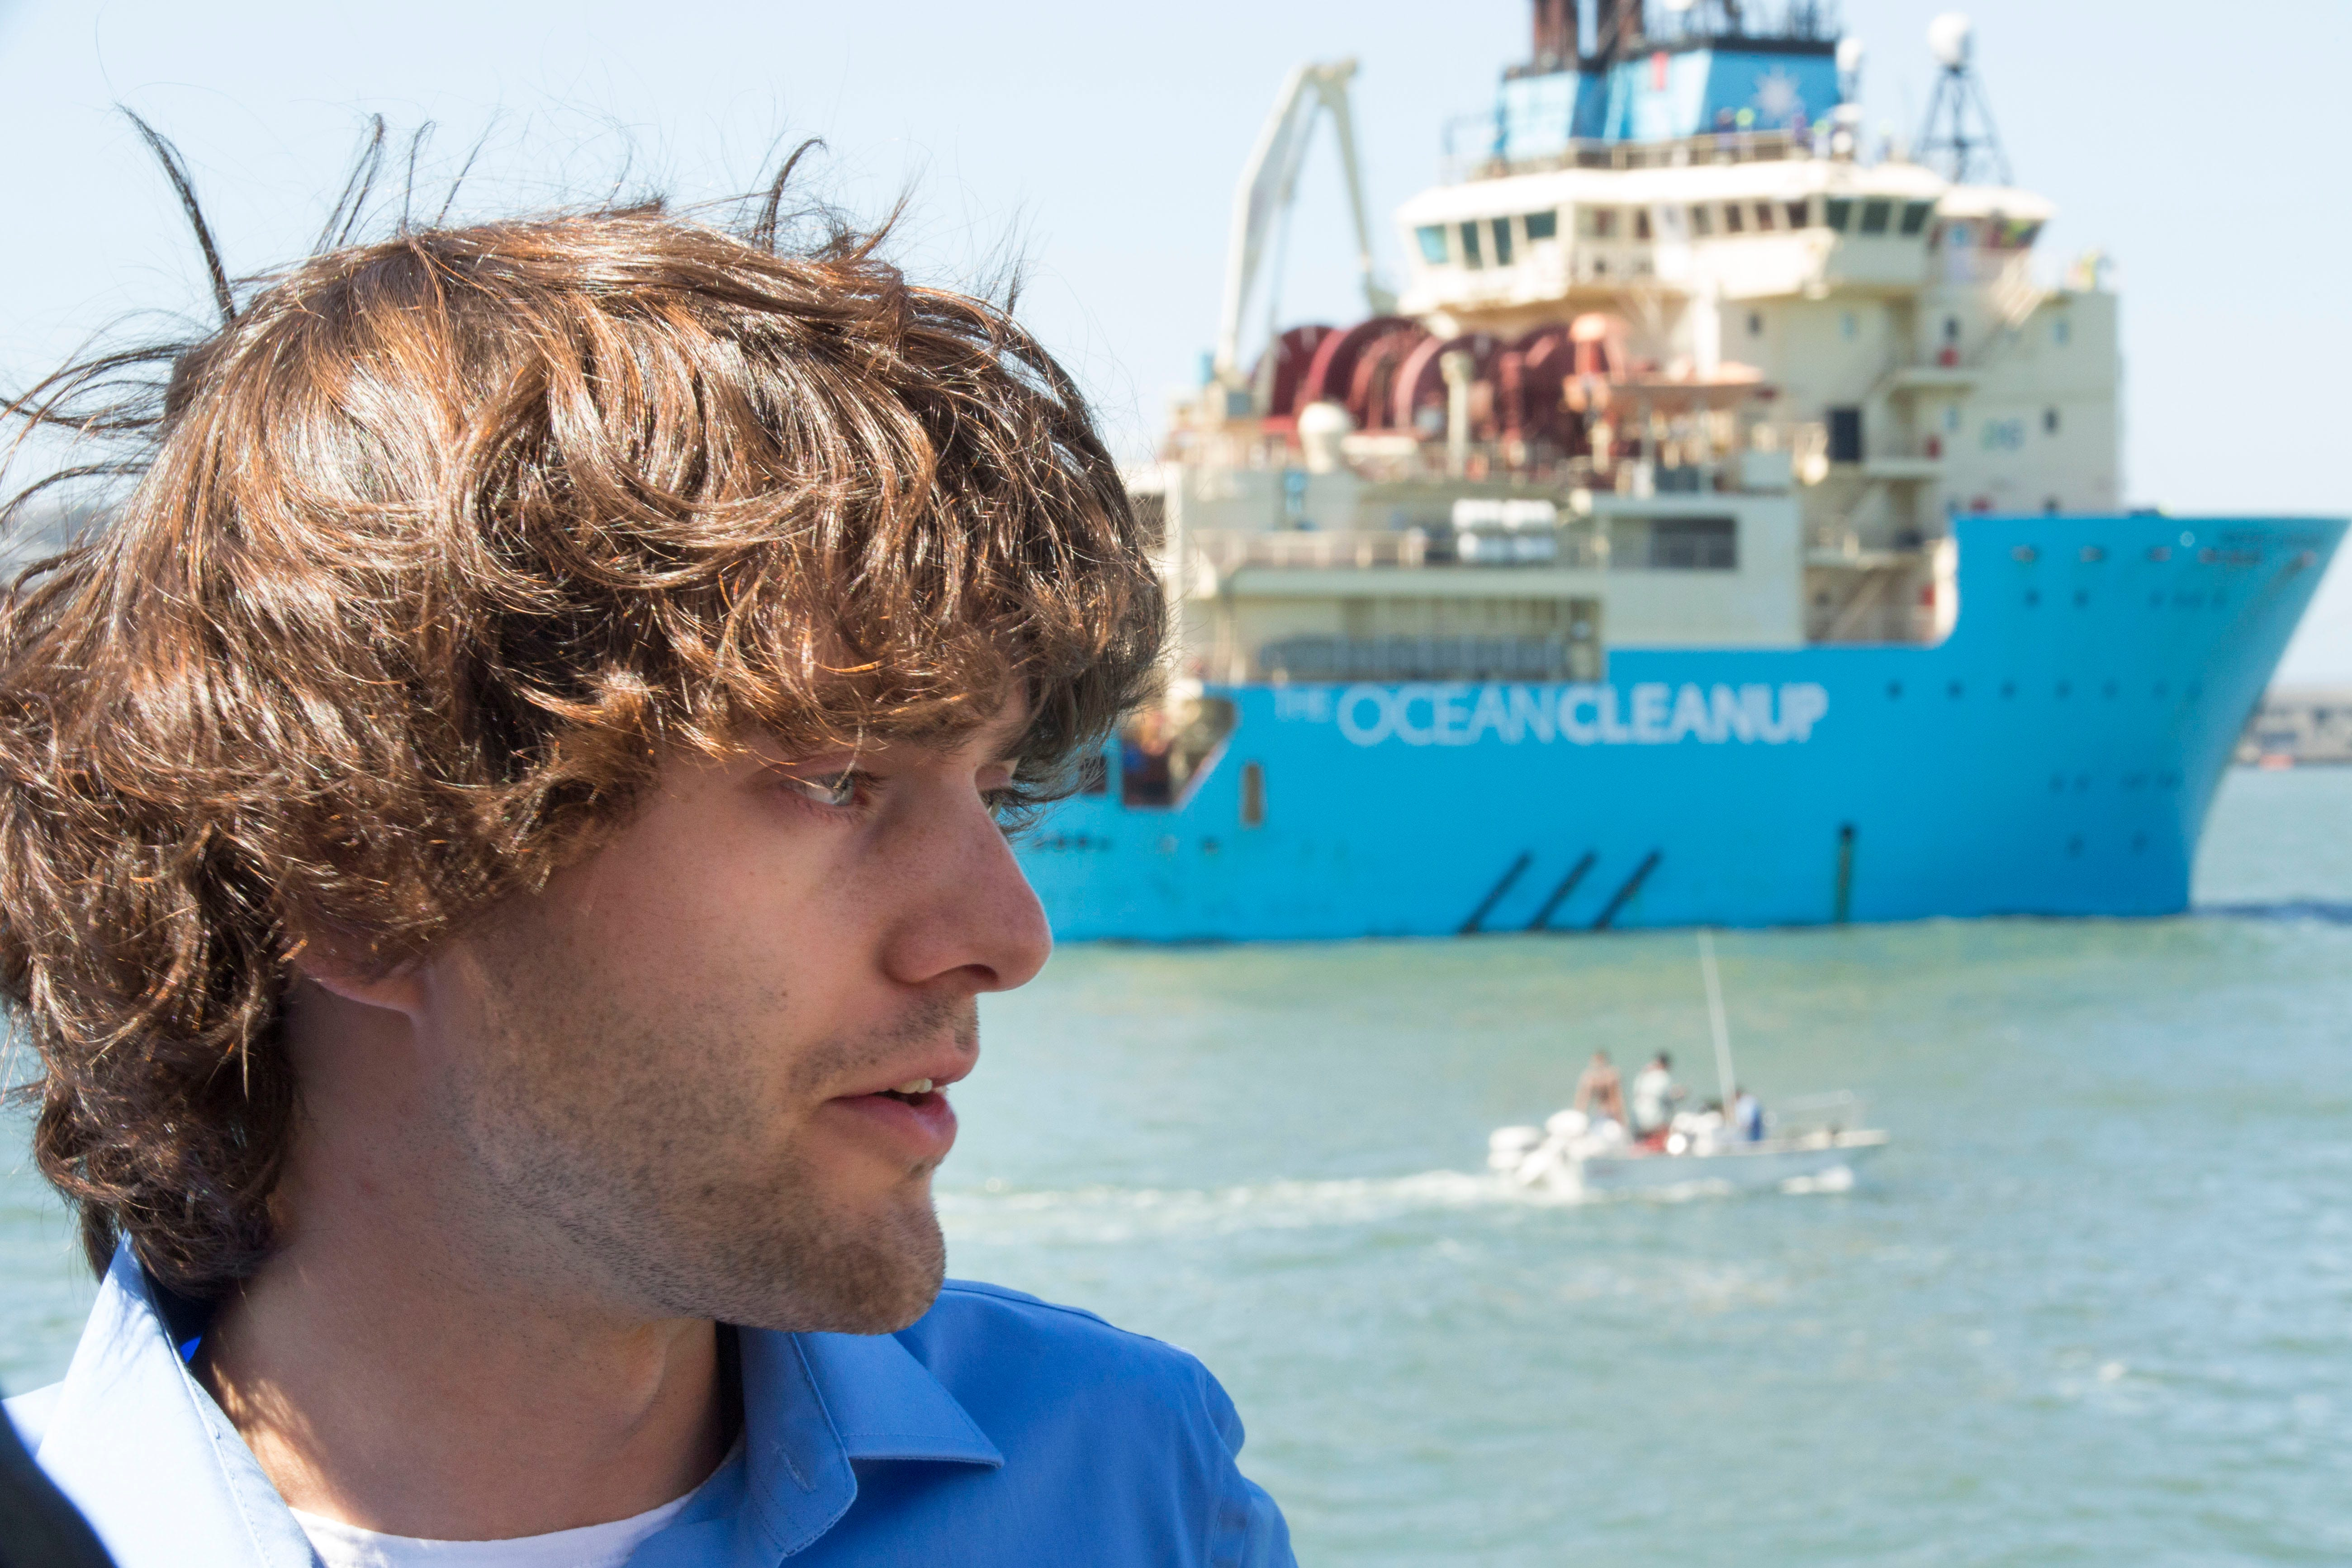 Boyan Slat, is a Dutch college dropout, so disgusted by plastic waste he has devoted his life to cleaning up the mess.